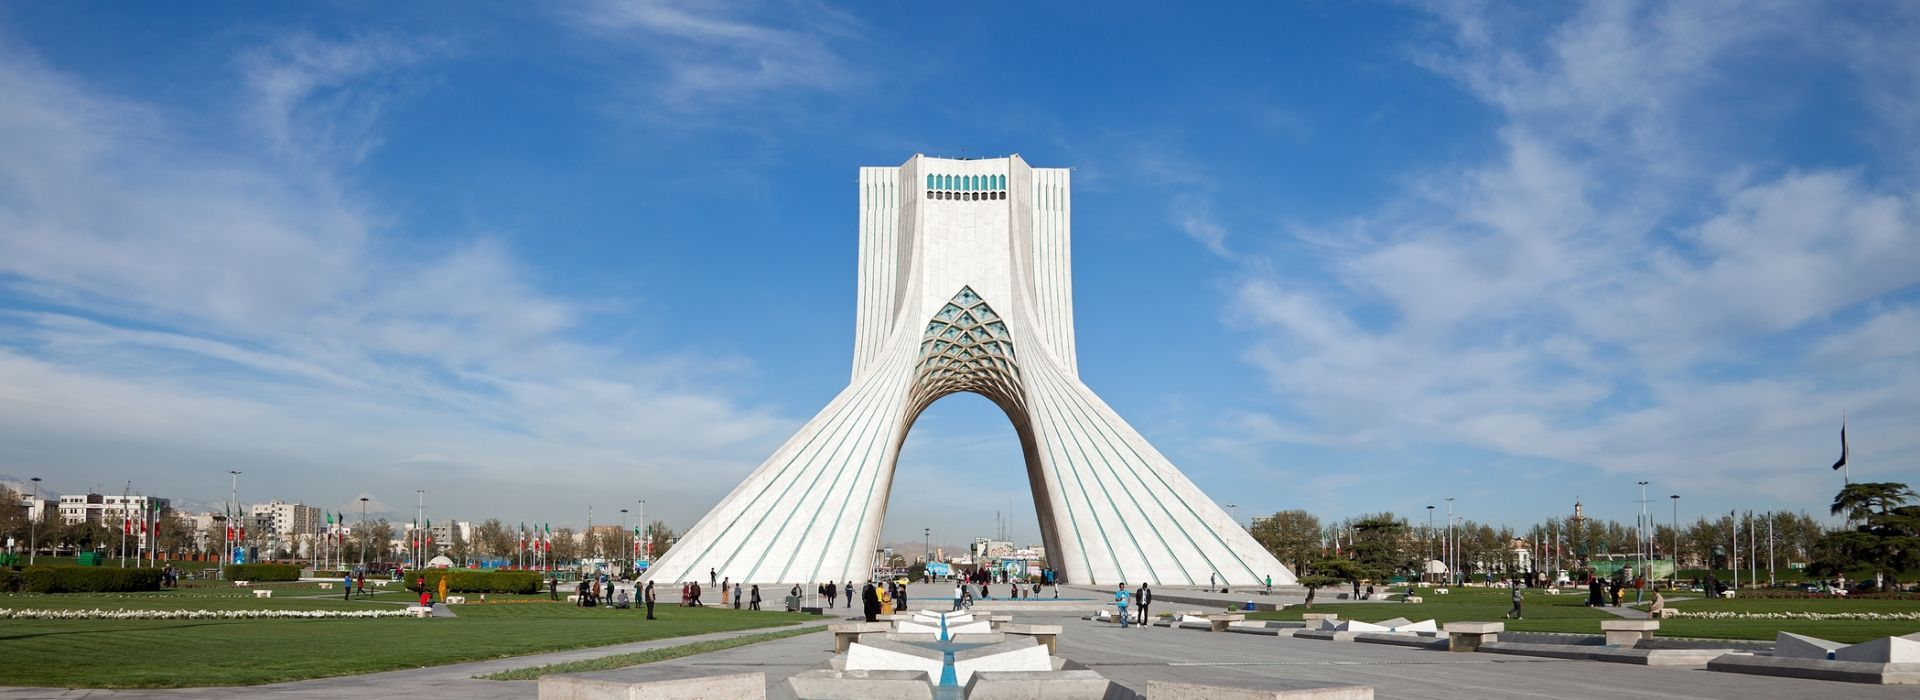 Bicycle tours in Iran